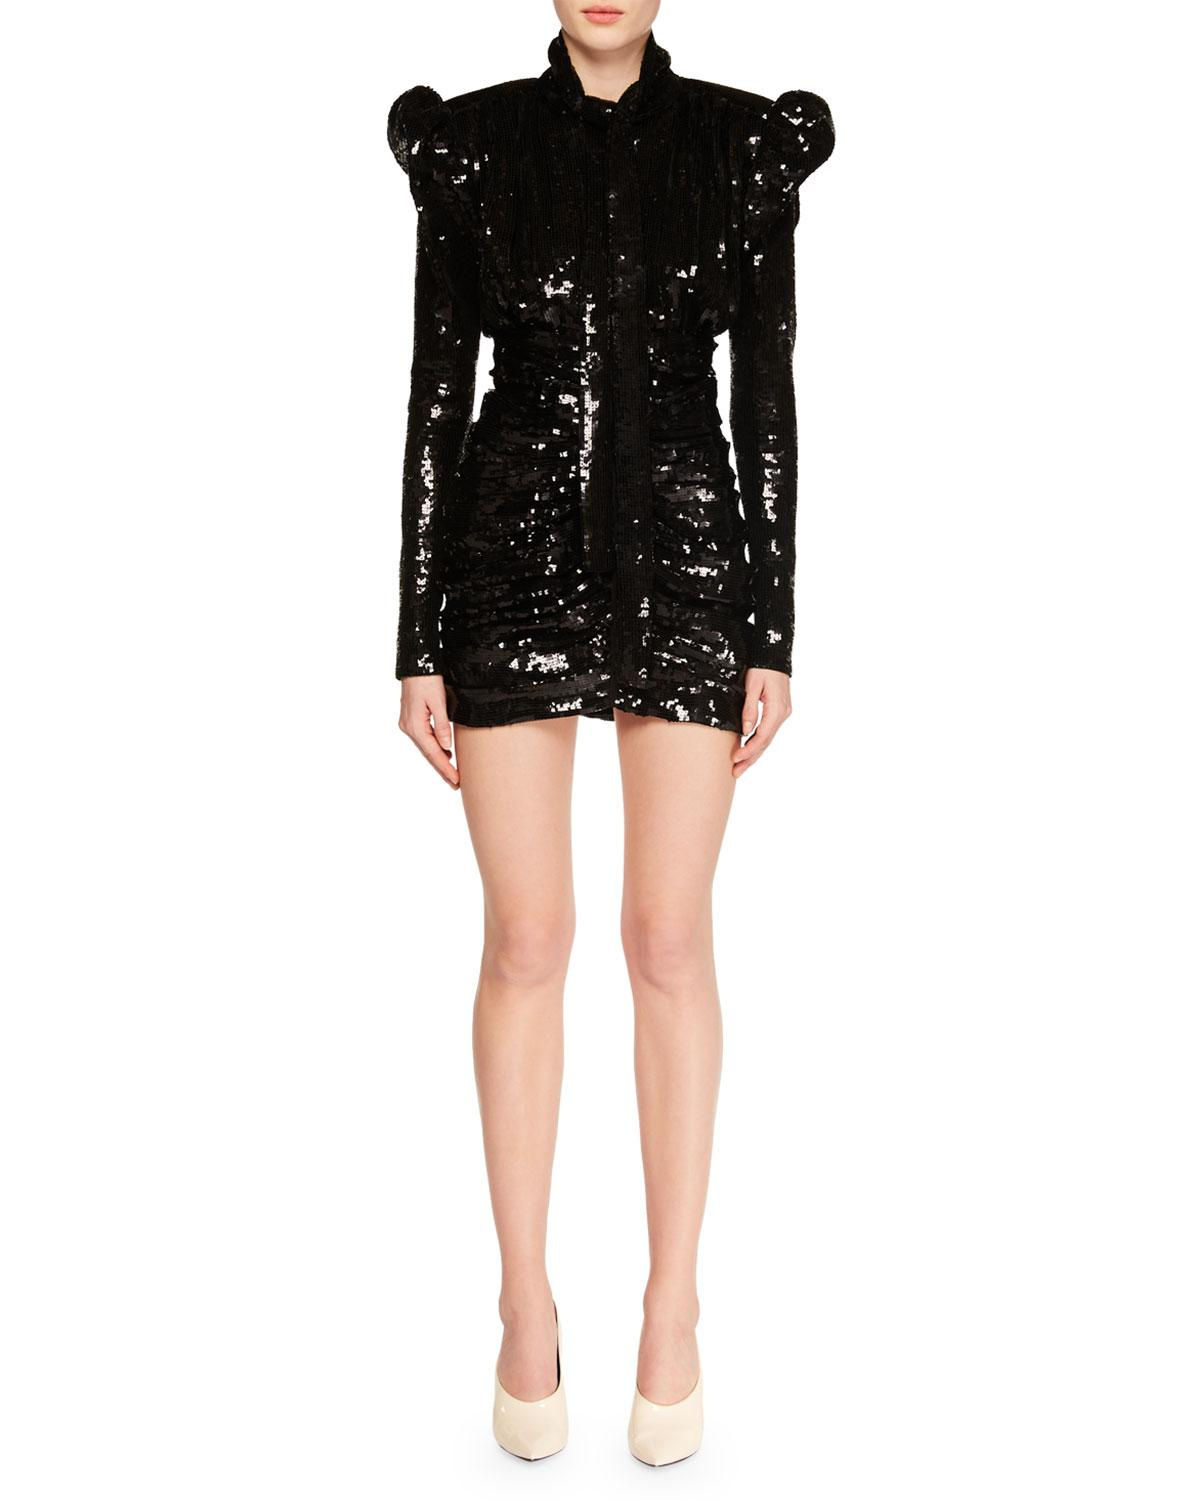 77e5ebc938 RUCHED SEQUIN MINI COCKTAIL DRESS